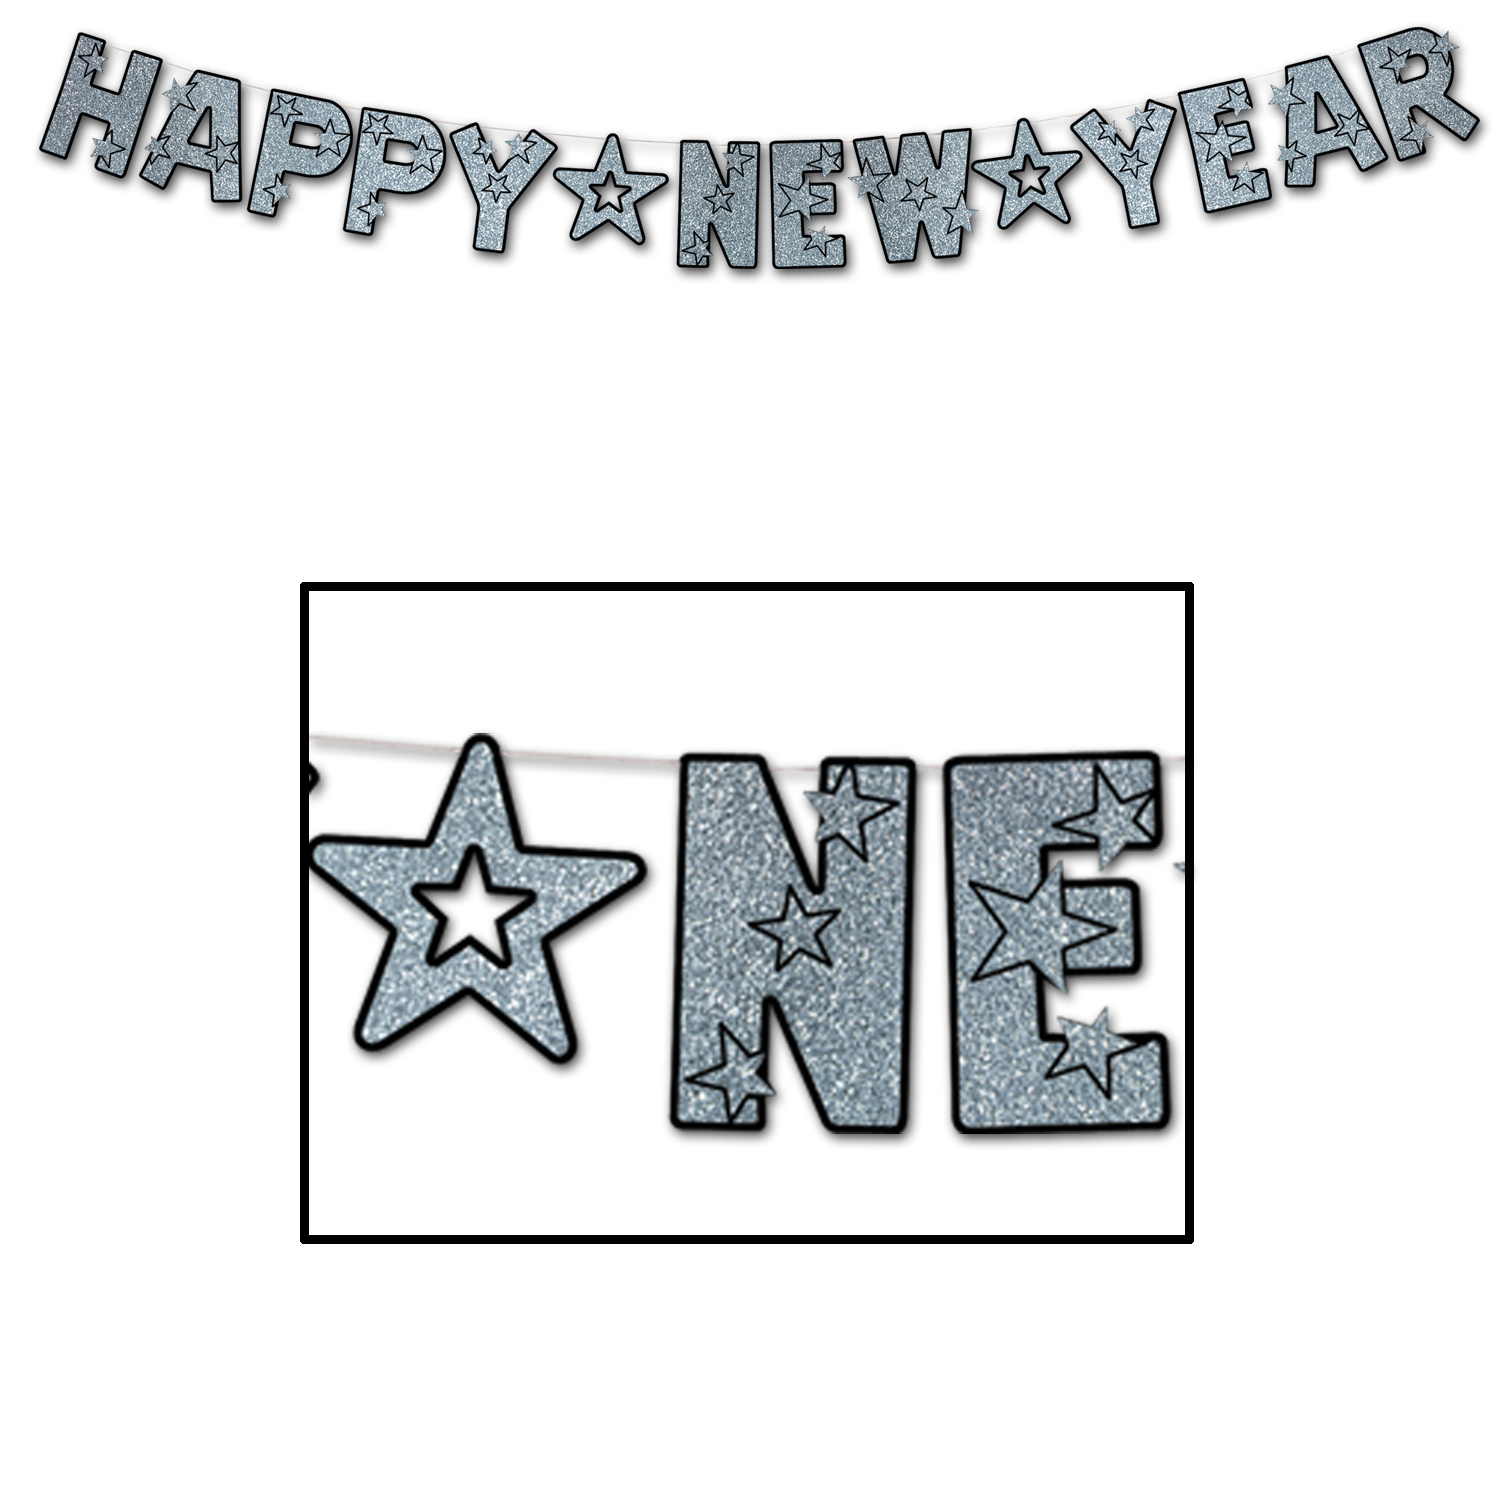 Glittered Happy New Year Streamer (Pack of 1) Glittered Happy New Year Streamer, glitter, black, silver, new years eve, decoration, wholesale, inexpensive, bulk